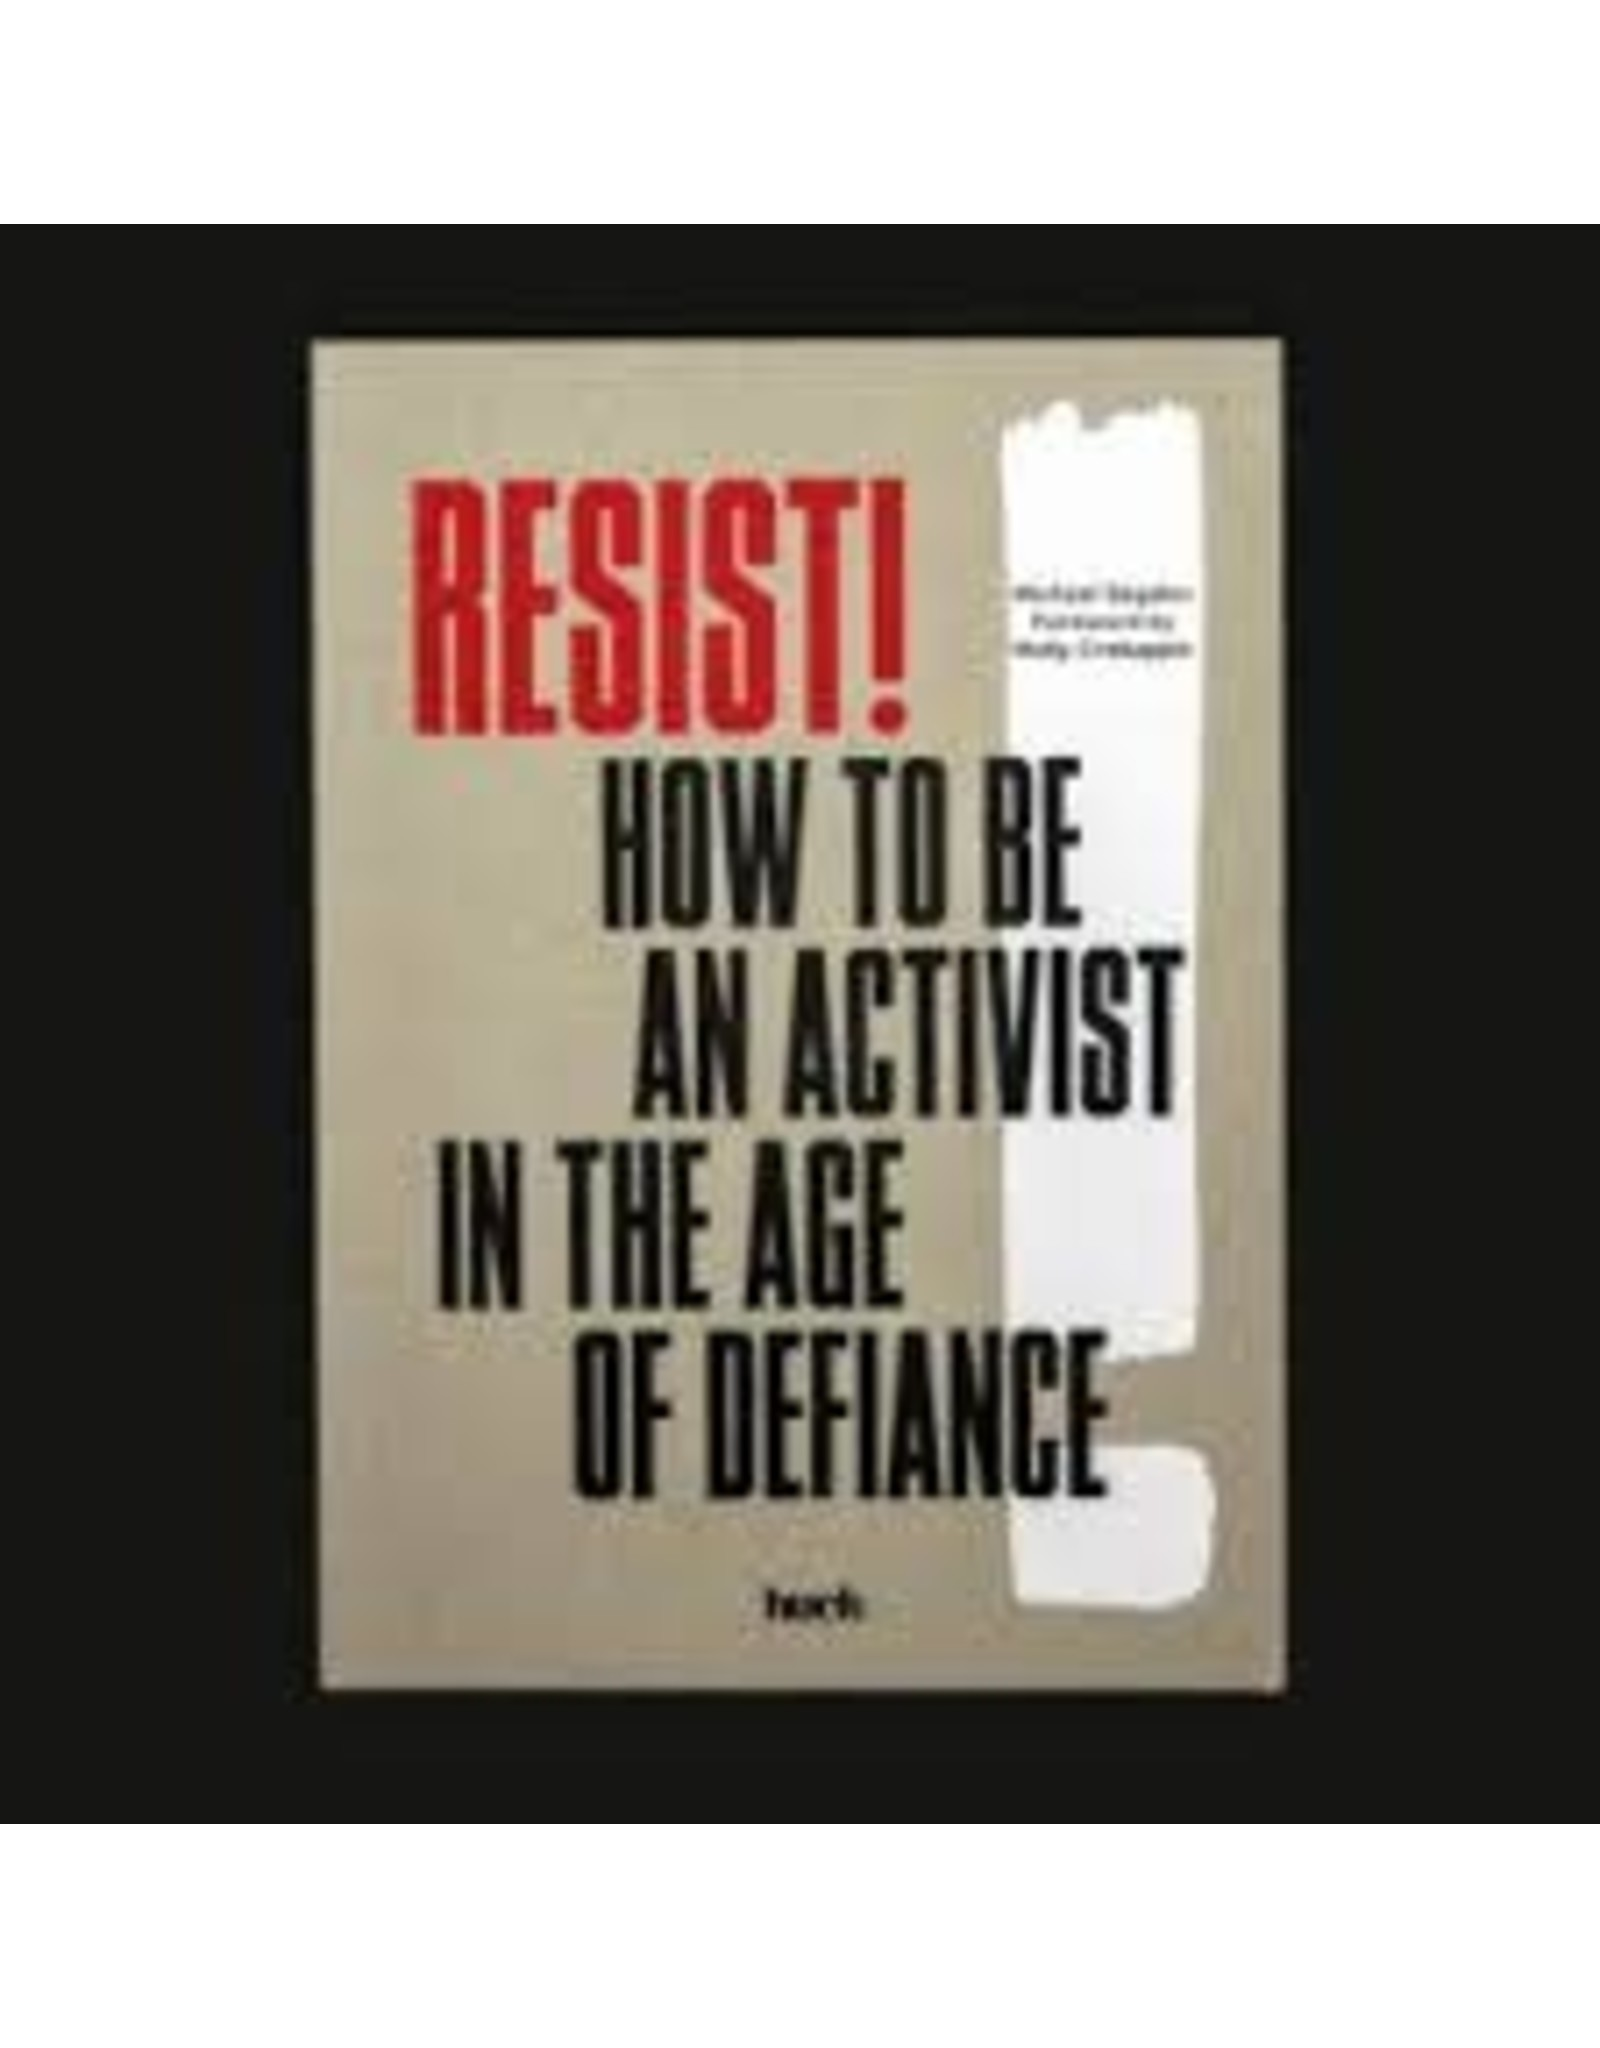 Chronicle Book - Resist How to be an activist in the age of defiance